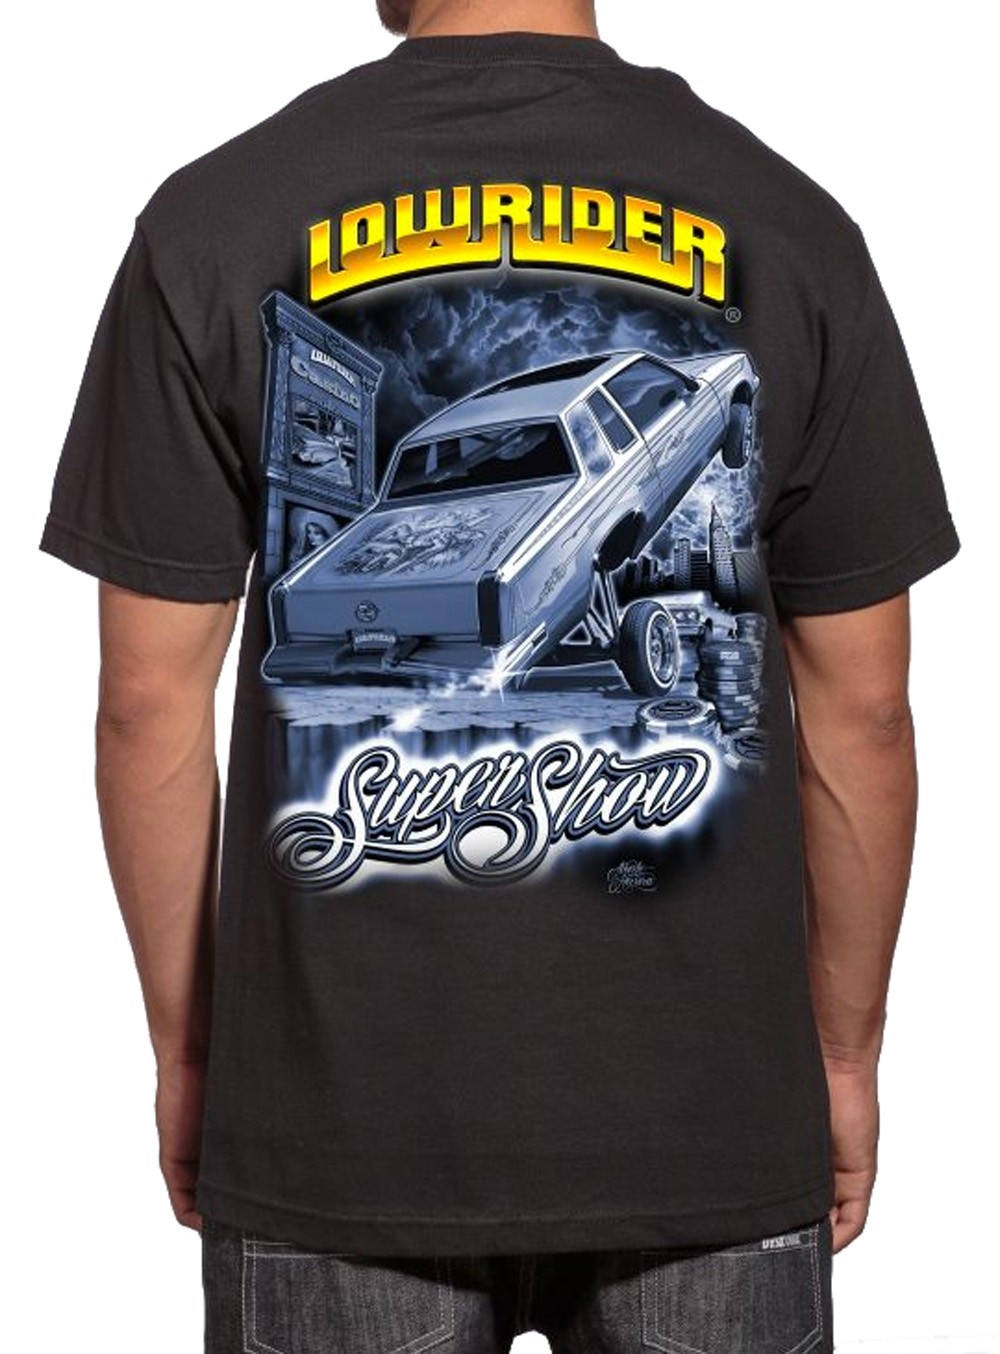 Lowrider Clothing - Supershow 2015 T-Shirt